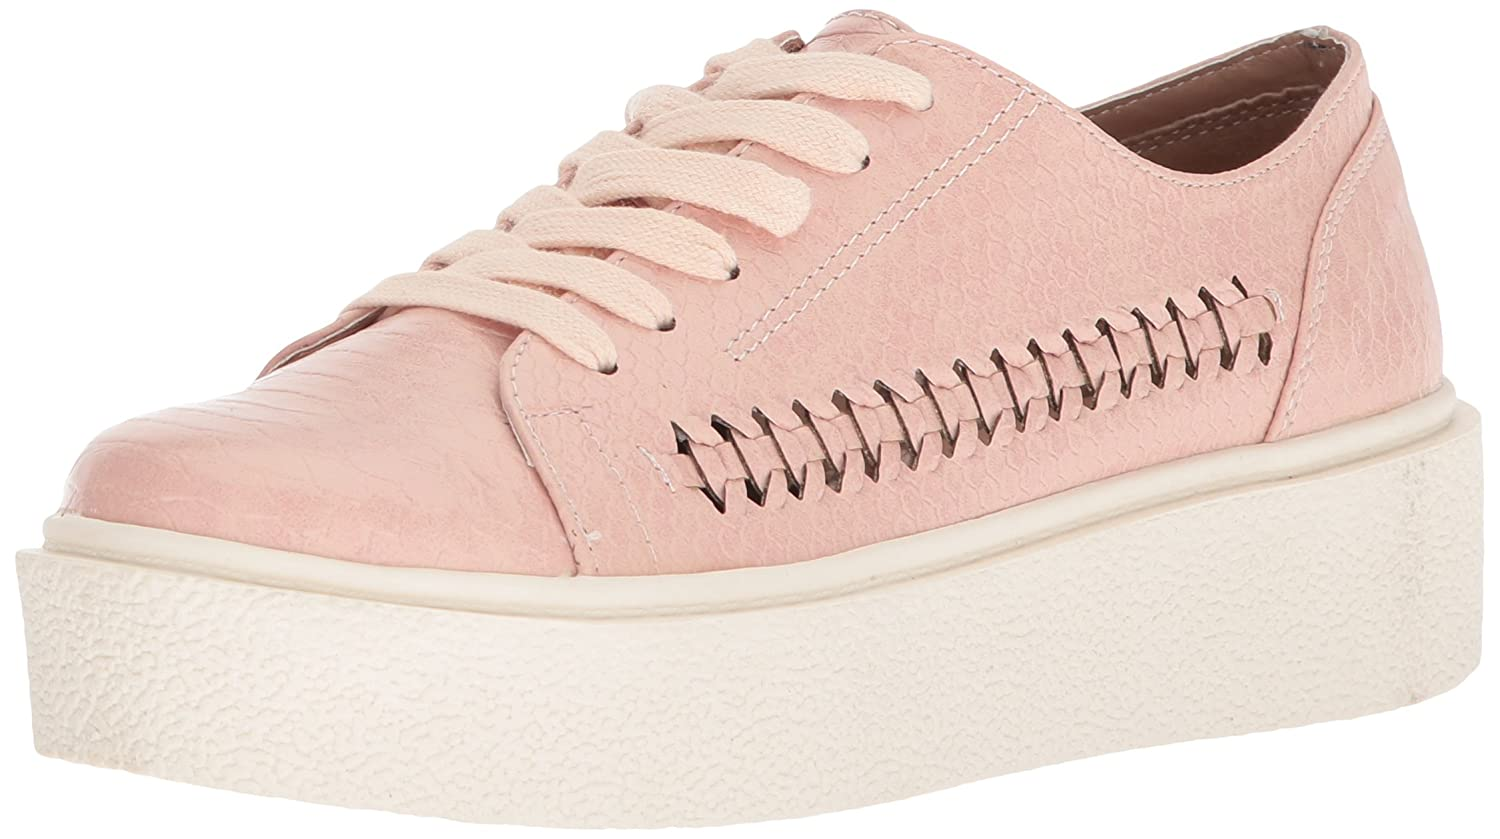 Coconuts by Matisse Women's White Out Sneaker B077343H57 6 M M US|Pink